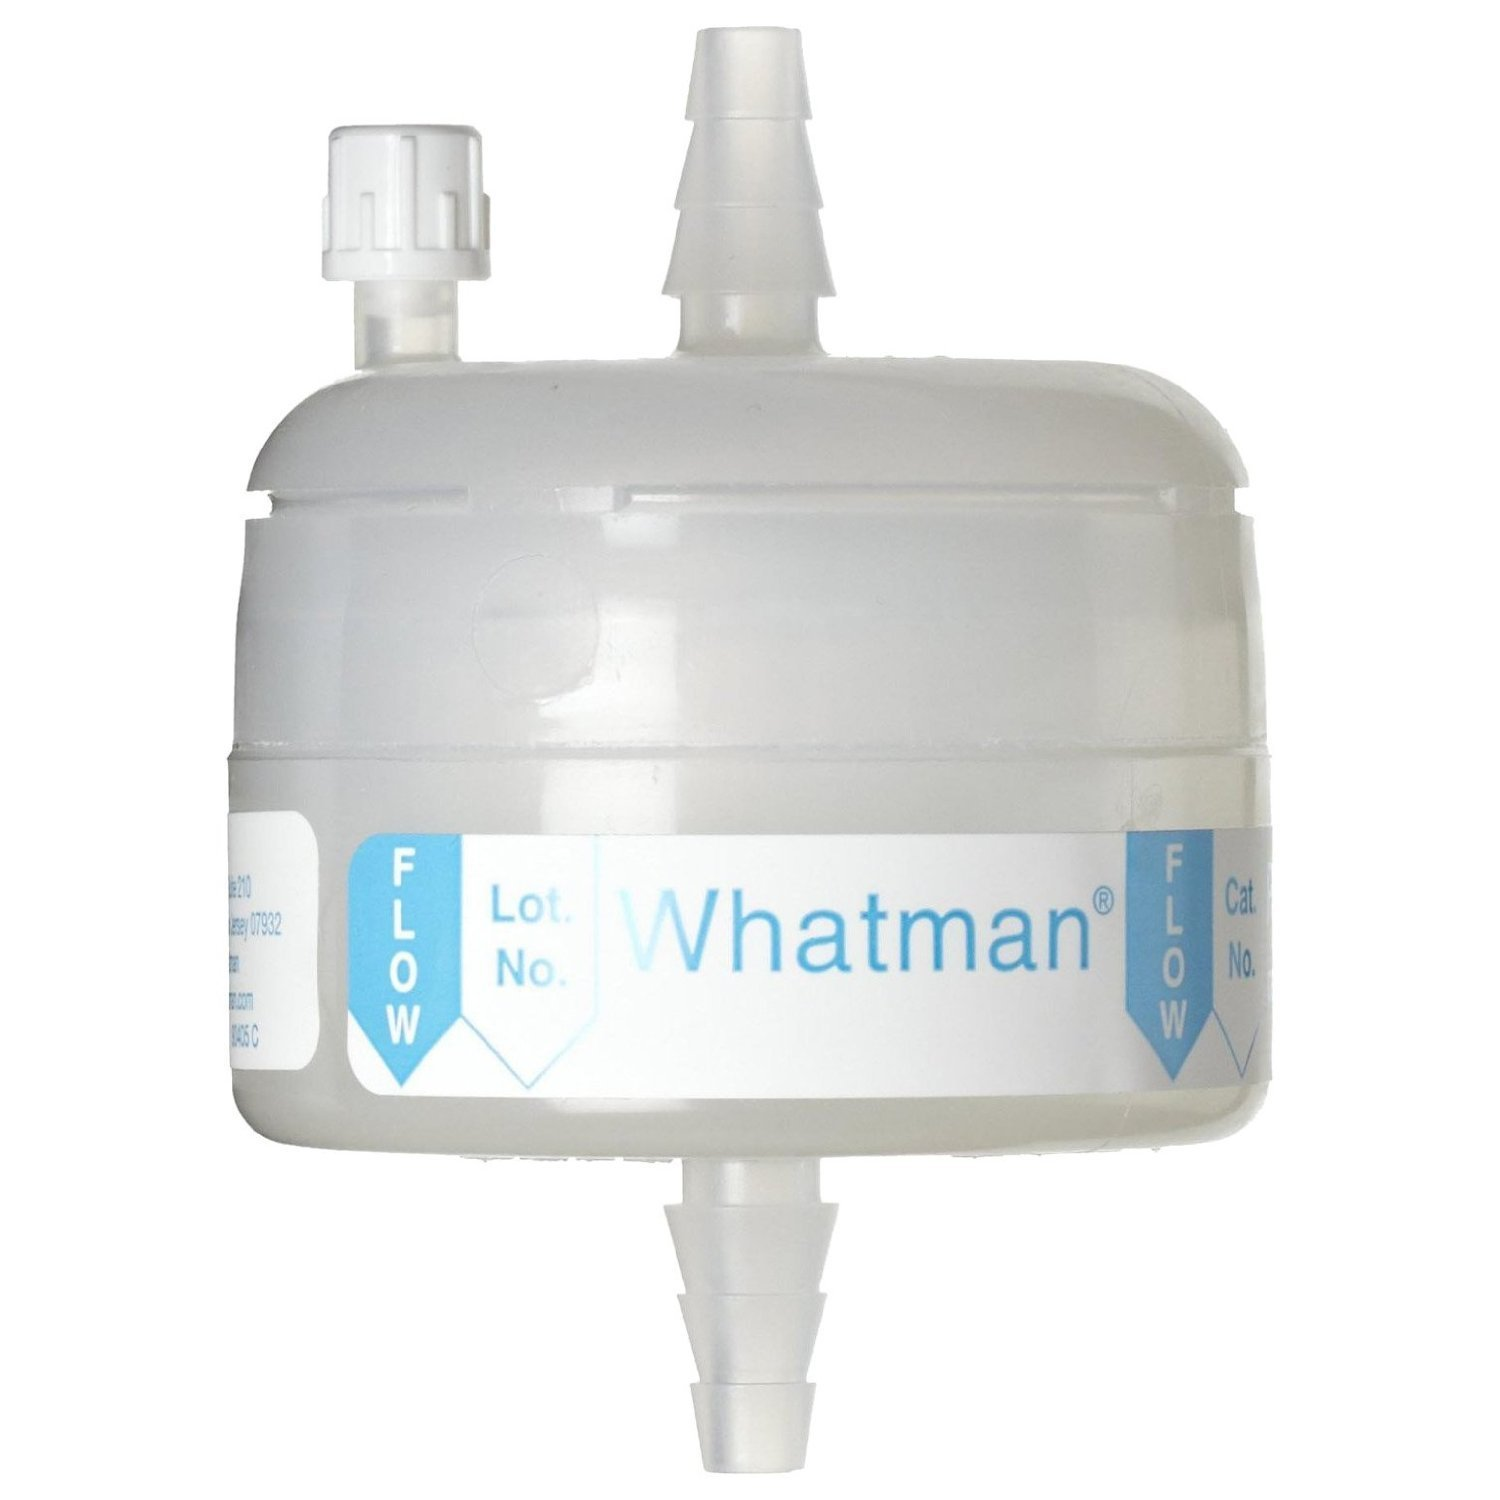 Whatman 2103 SteriVENT PTFE 36 Venting Filter Membrane with 3 8 1 2 Stepped Hose Barb Fittings 0.2 Micron